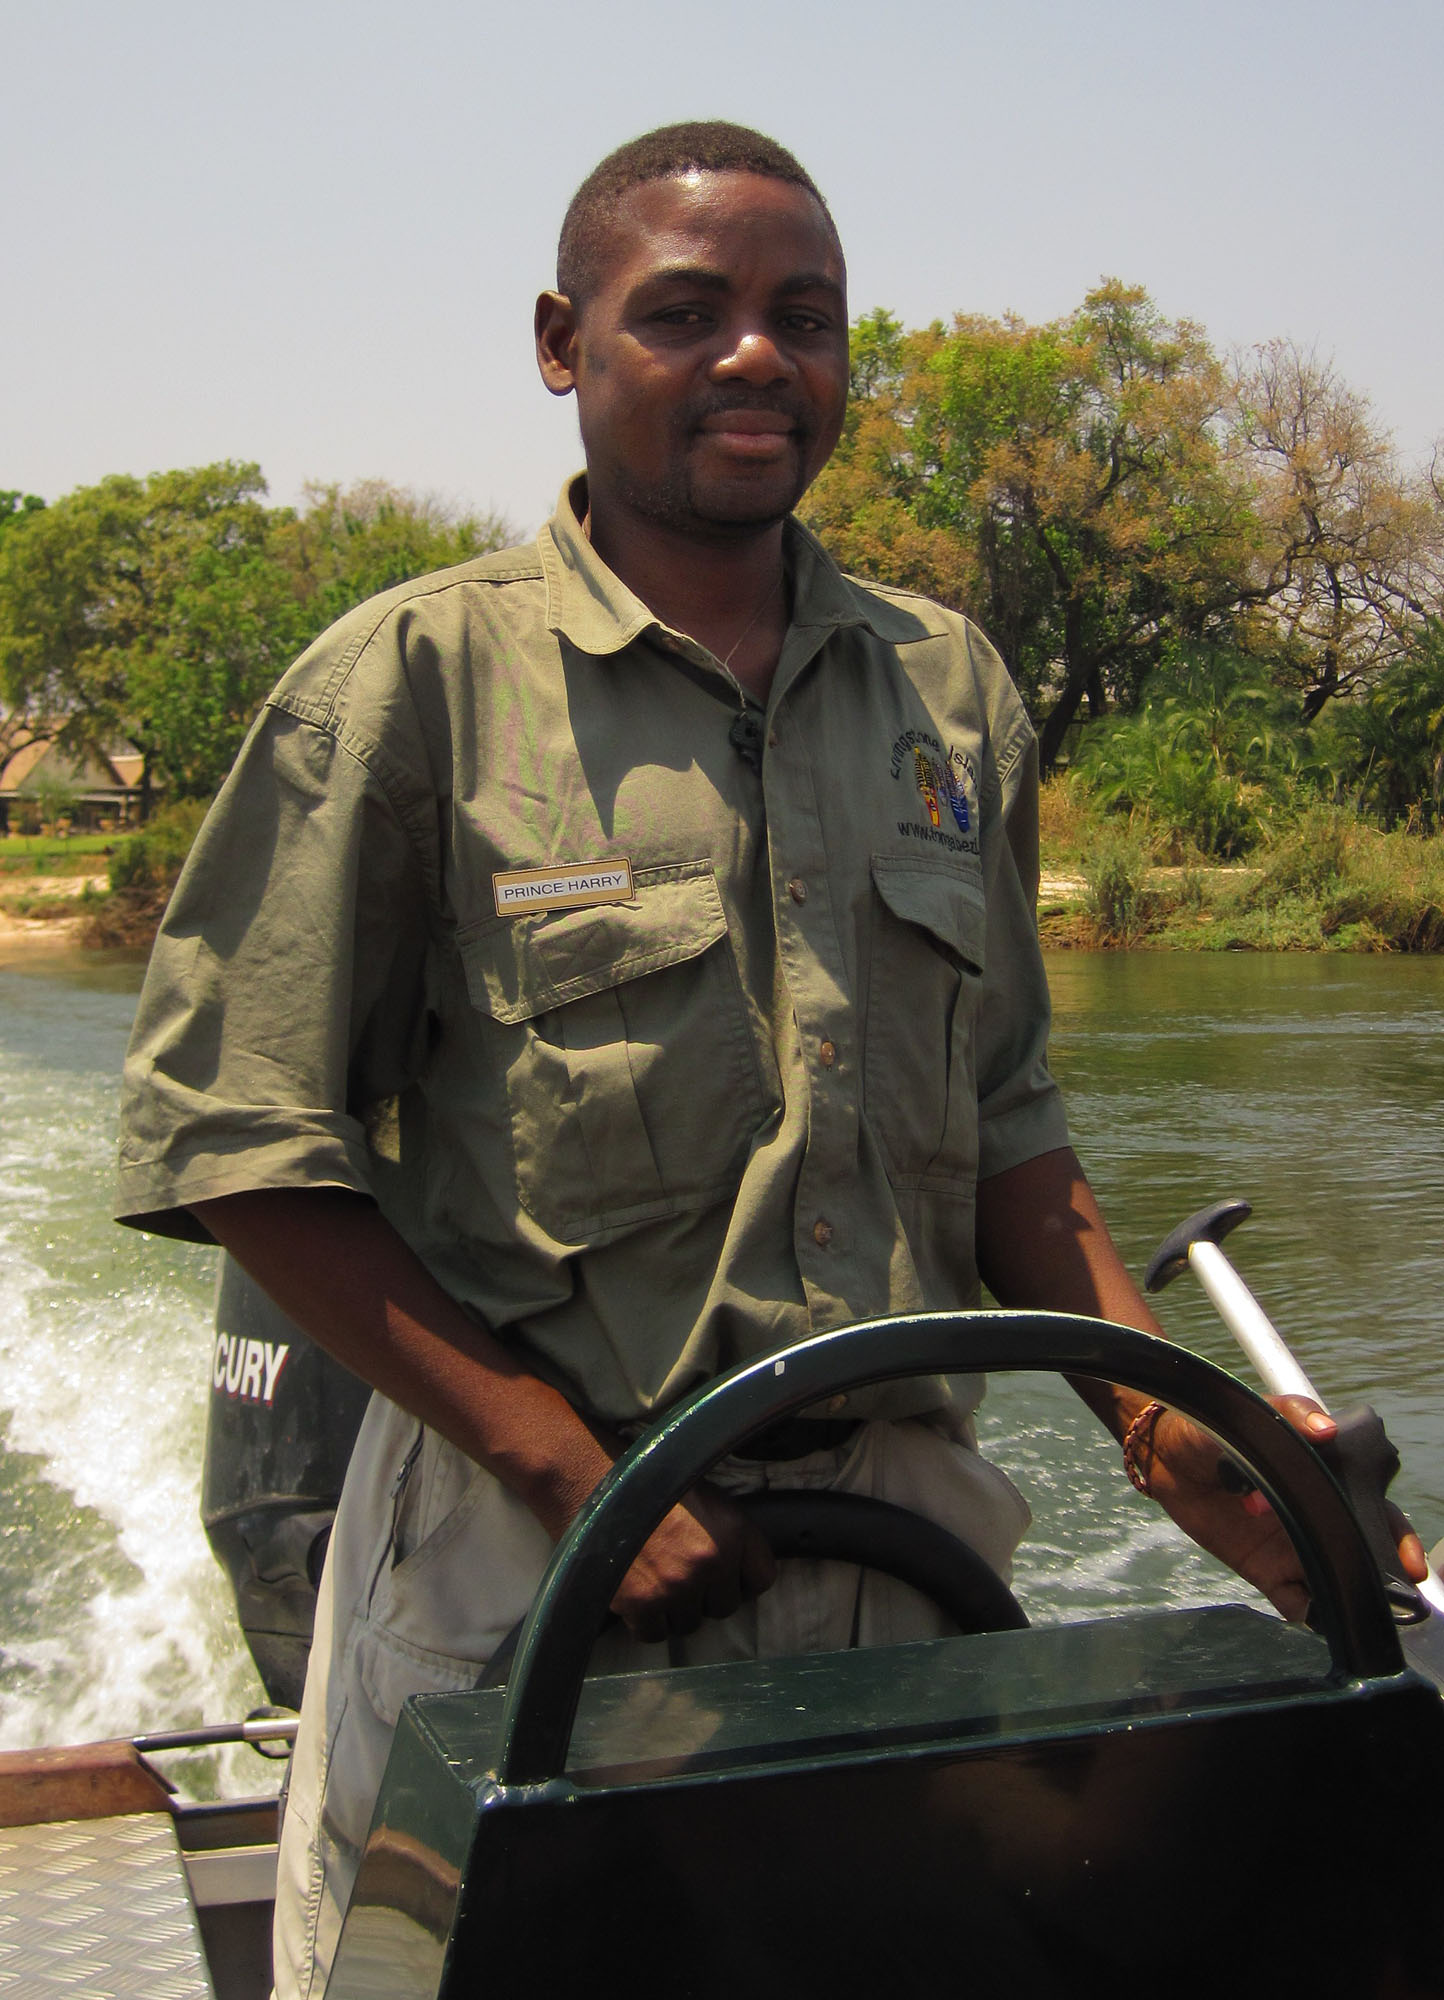 Our boat driver, Prince Harry